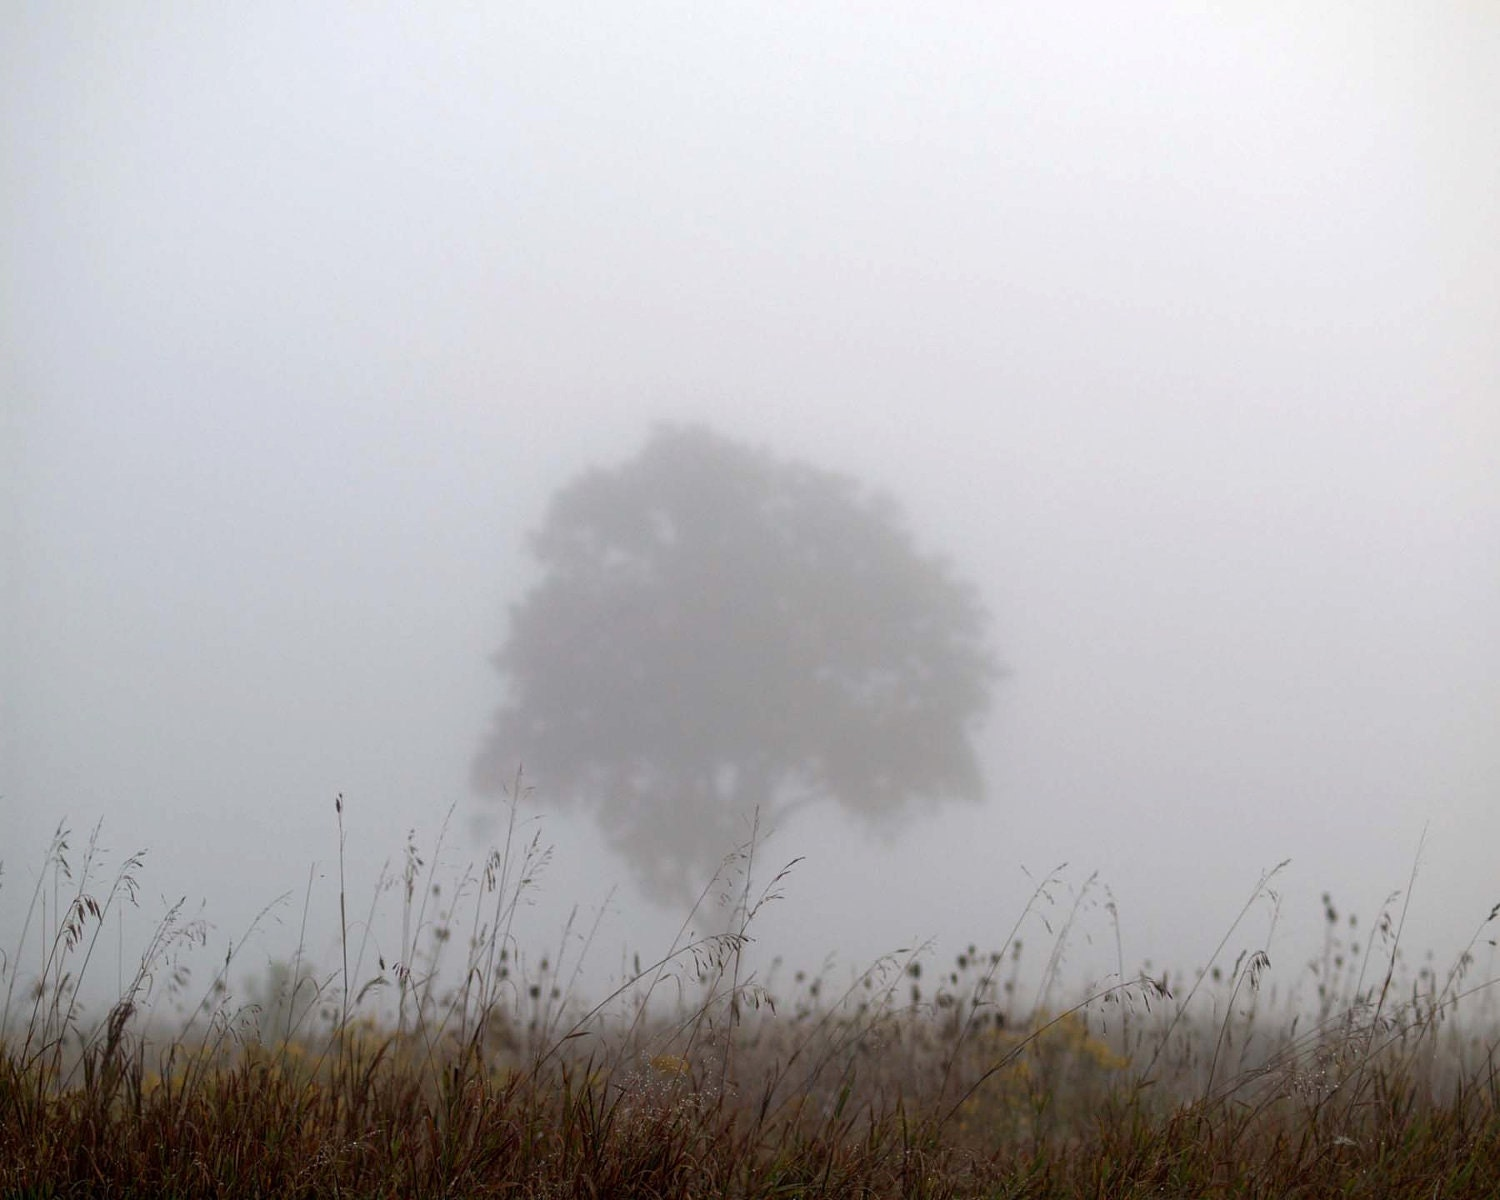 Foggy Autumn, Nature Photography - SOLITARY  8X10  tree, nature, fog, serene, misty, gray, morning. - NearLife